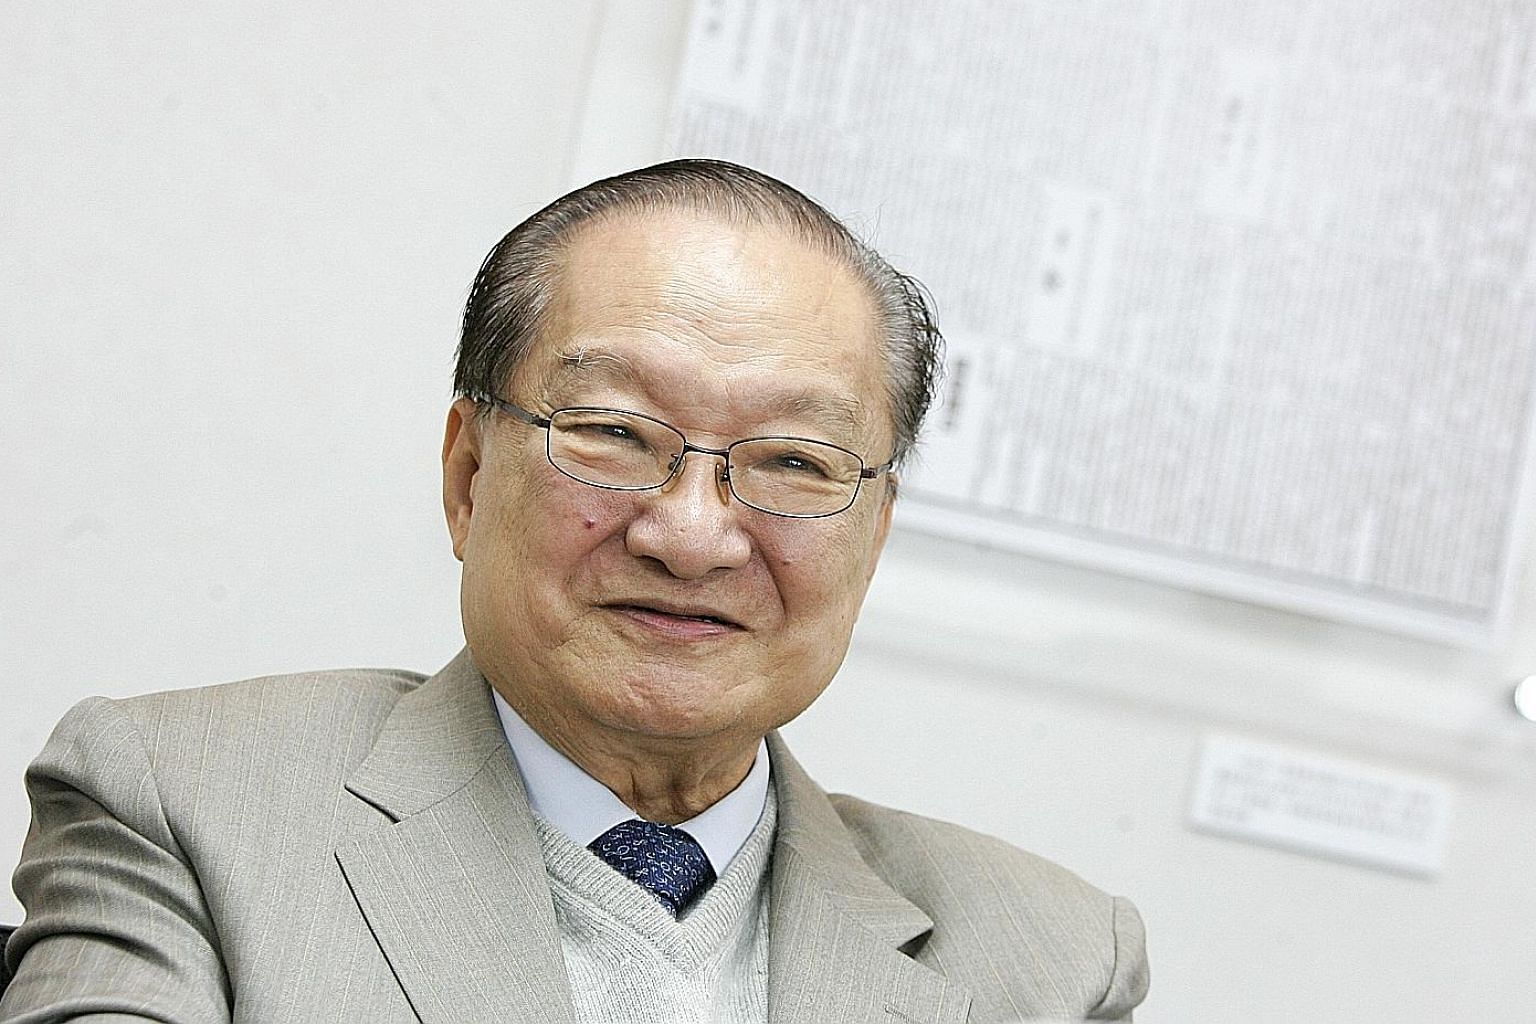 In Louis Cha's most prolific years at Ming Pao, the newsman and author who went by the pen name Jin Yong was said to be writing editorials with his right hand and daily instalments of wuxia serials with his left.